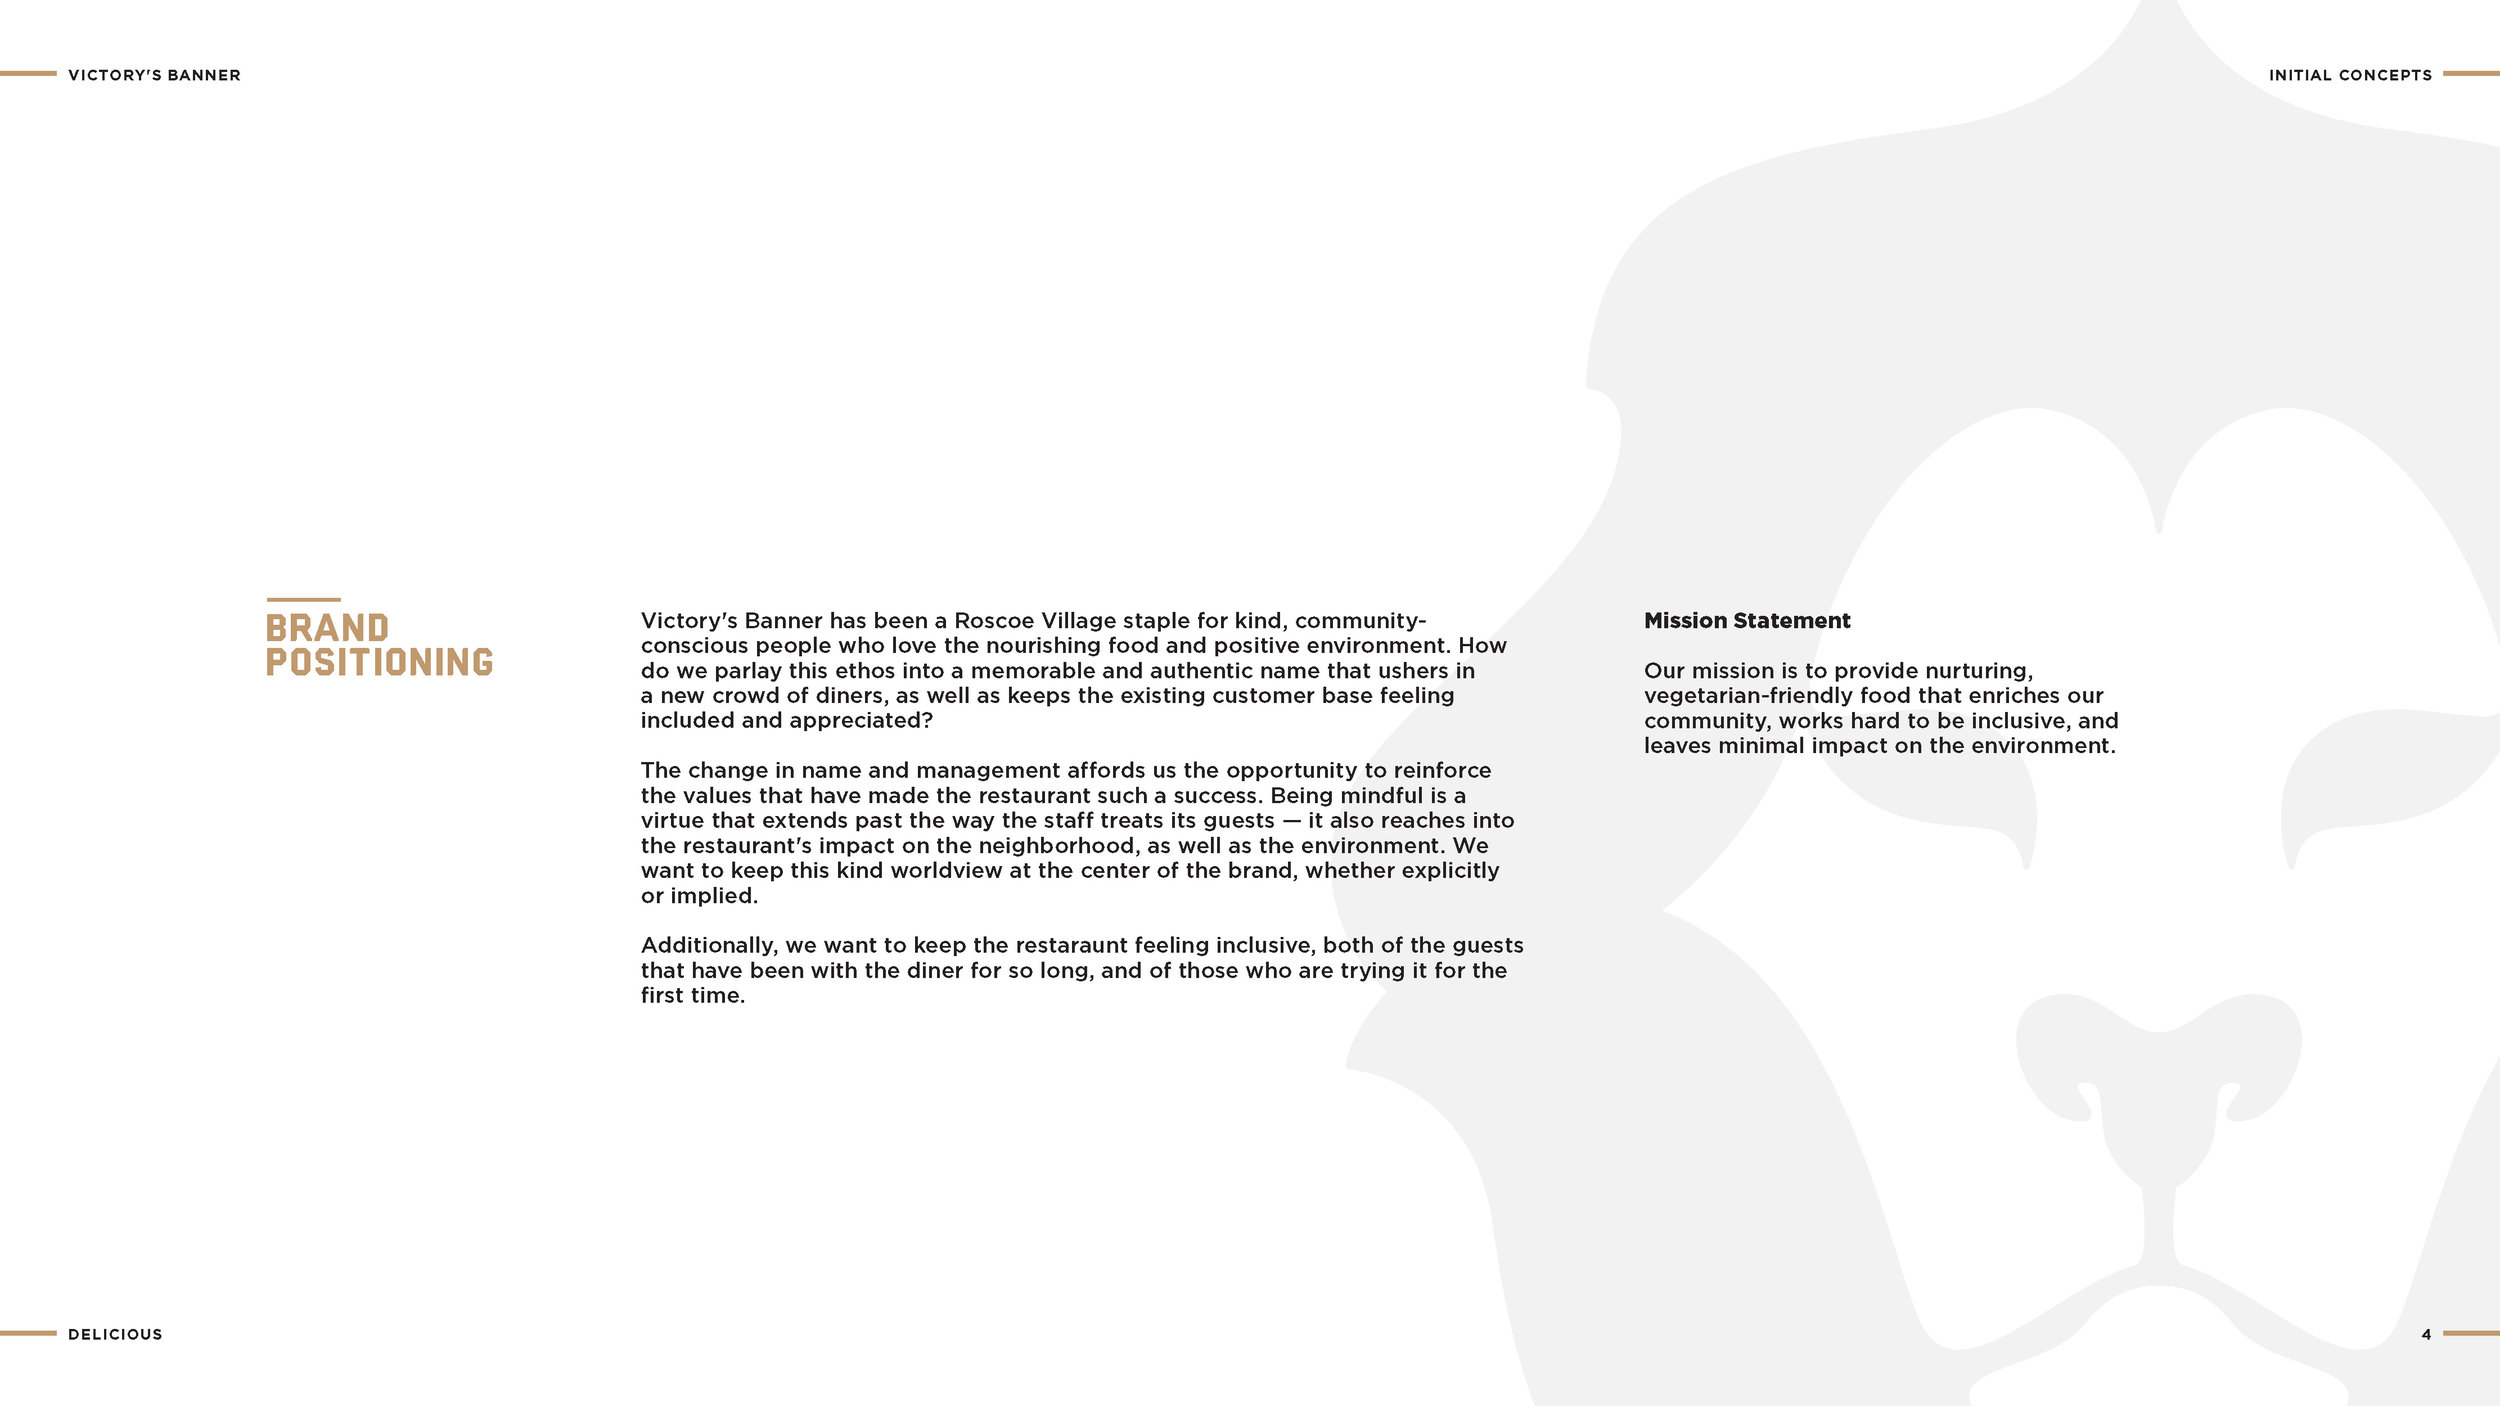 VictorysBanner_InitialConcepts_Page_4.jpg